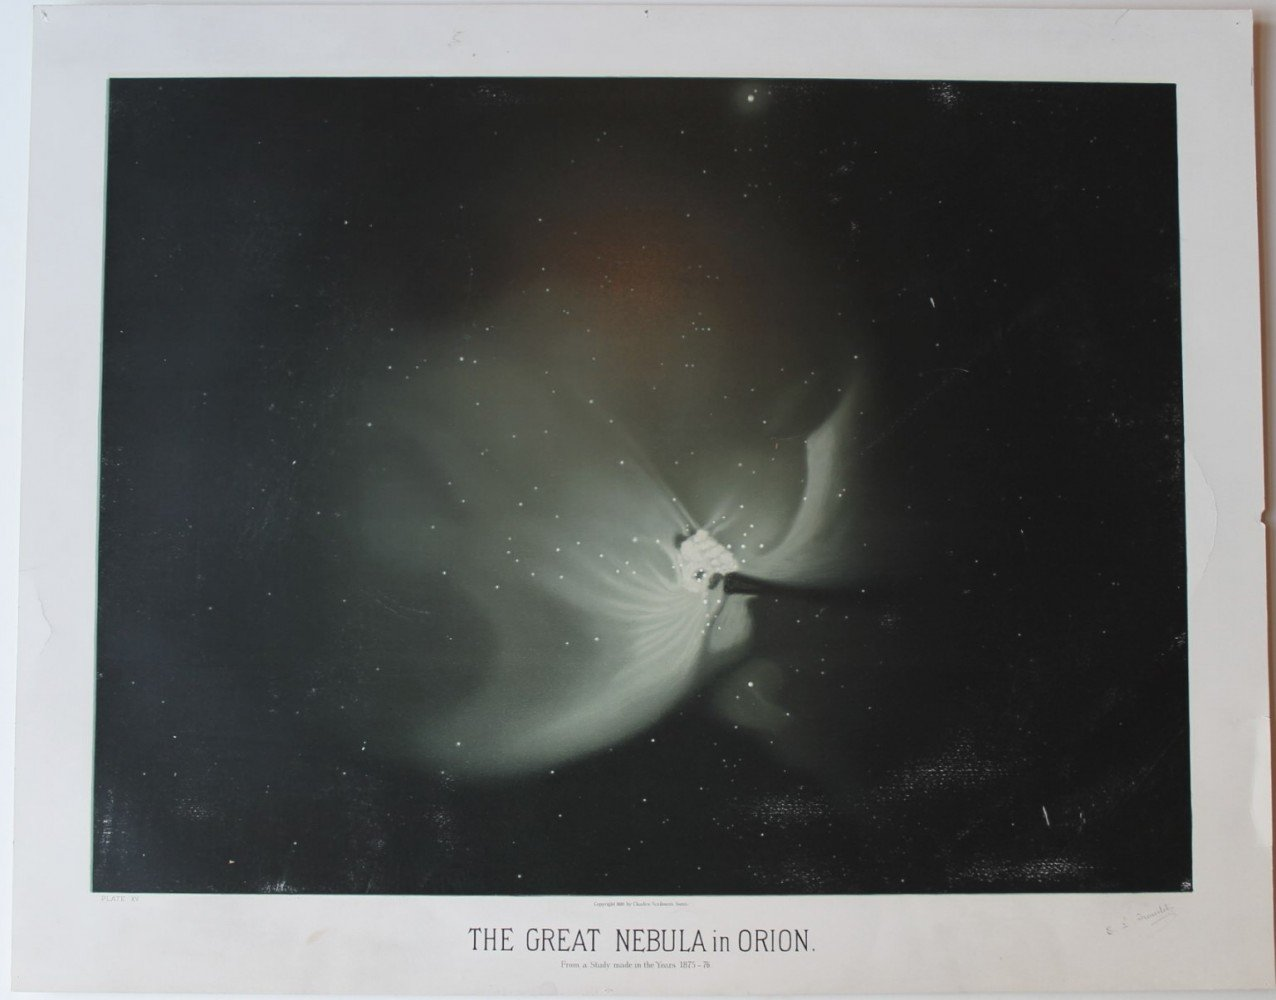 A Rare Complete Set of Trouvelot Astronomical Drawings by Etienne Leopold Trouvelot